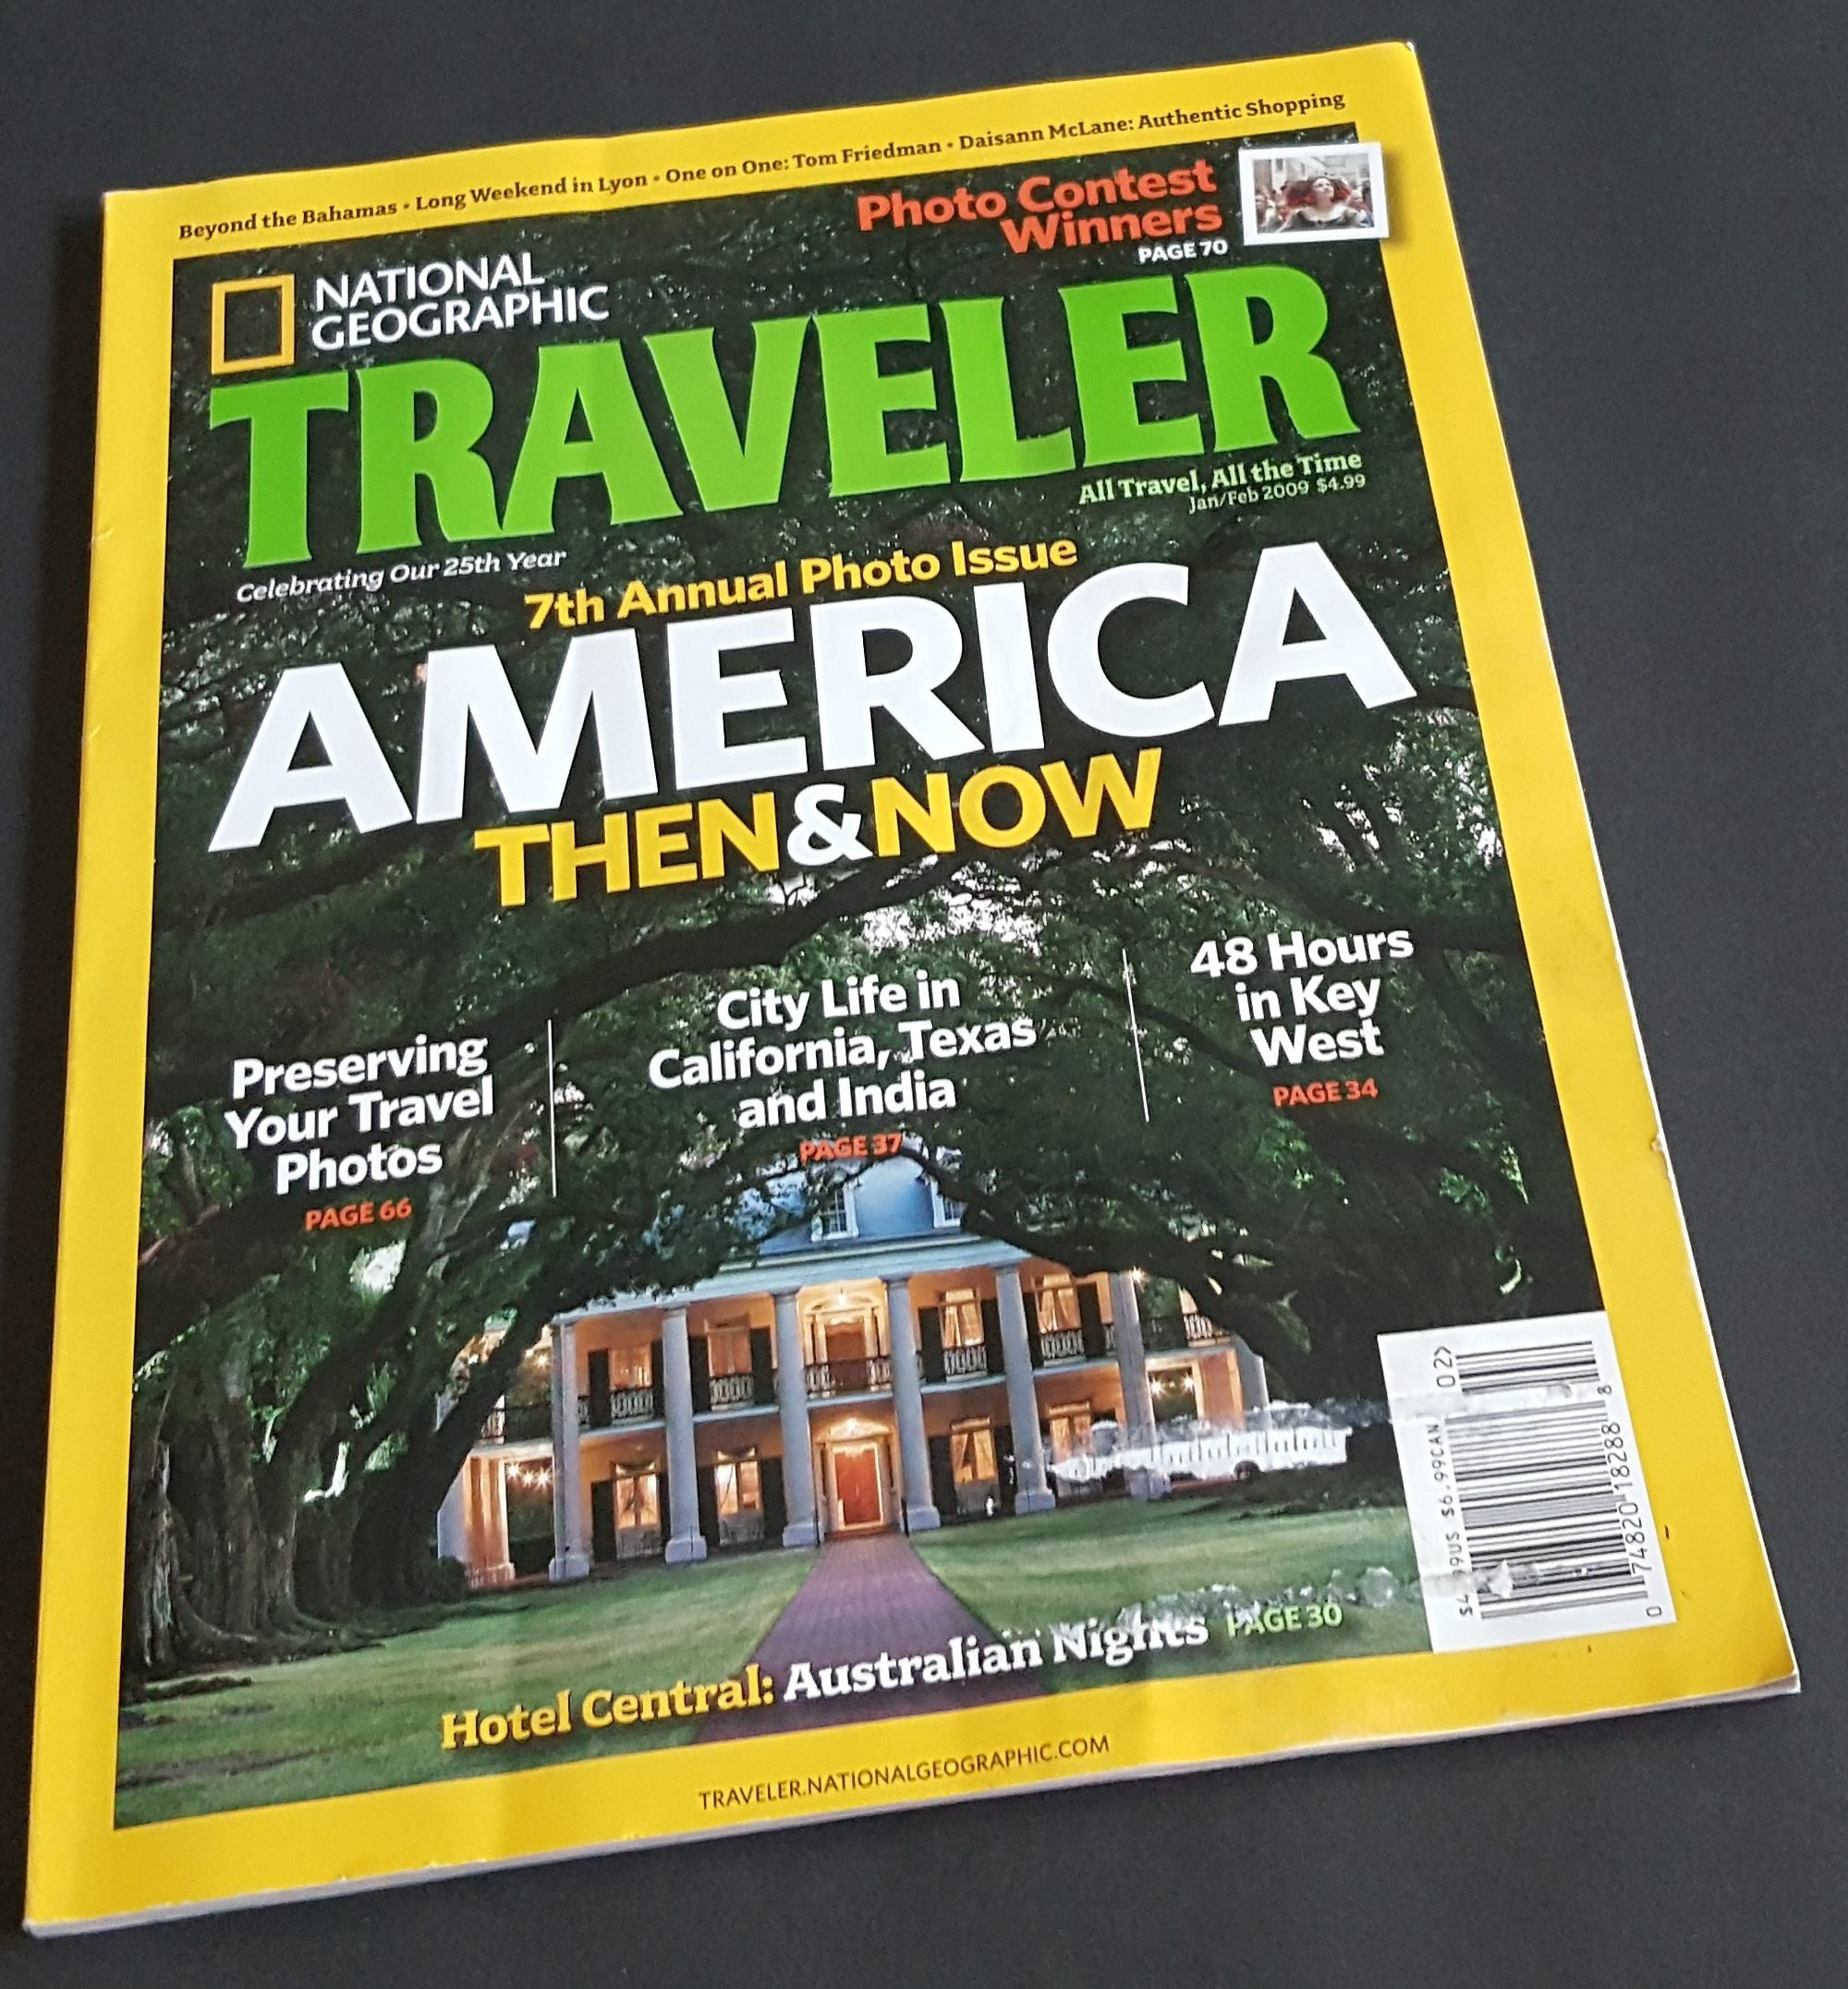 National Geographic Traveler Magazine, January / February 2009